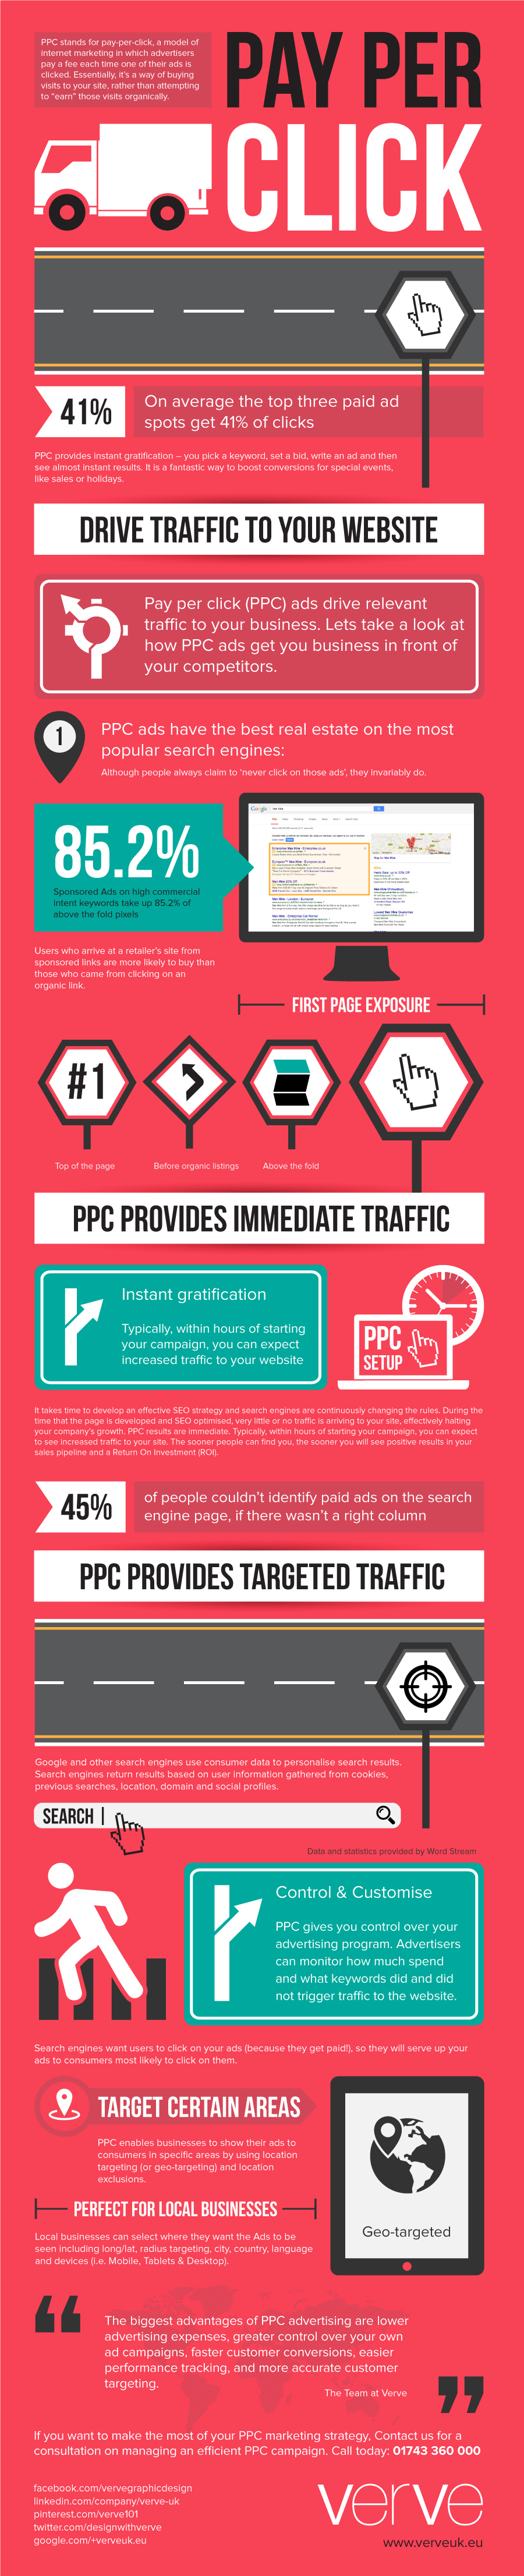 What Is Pay Per Click?